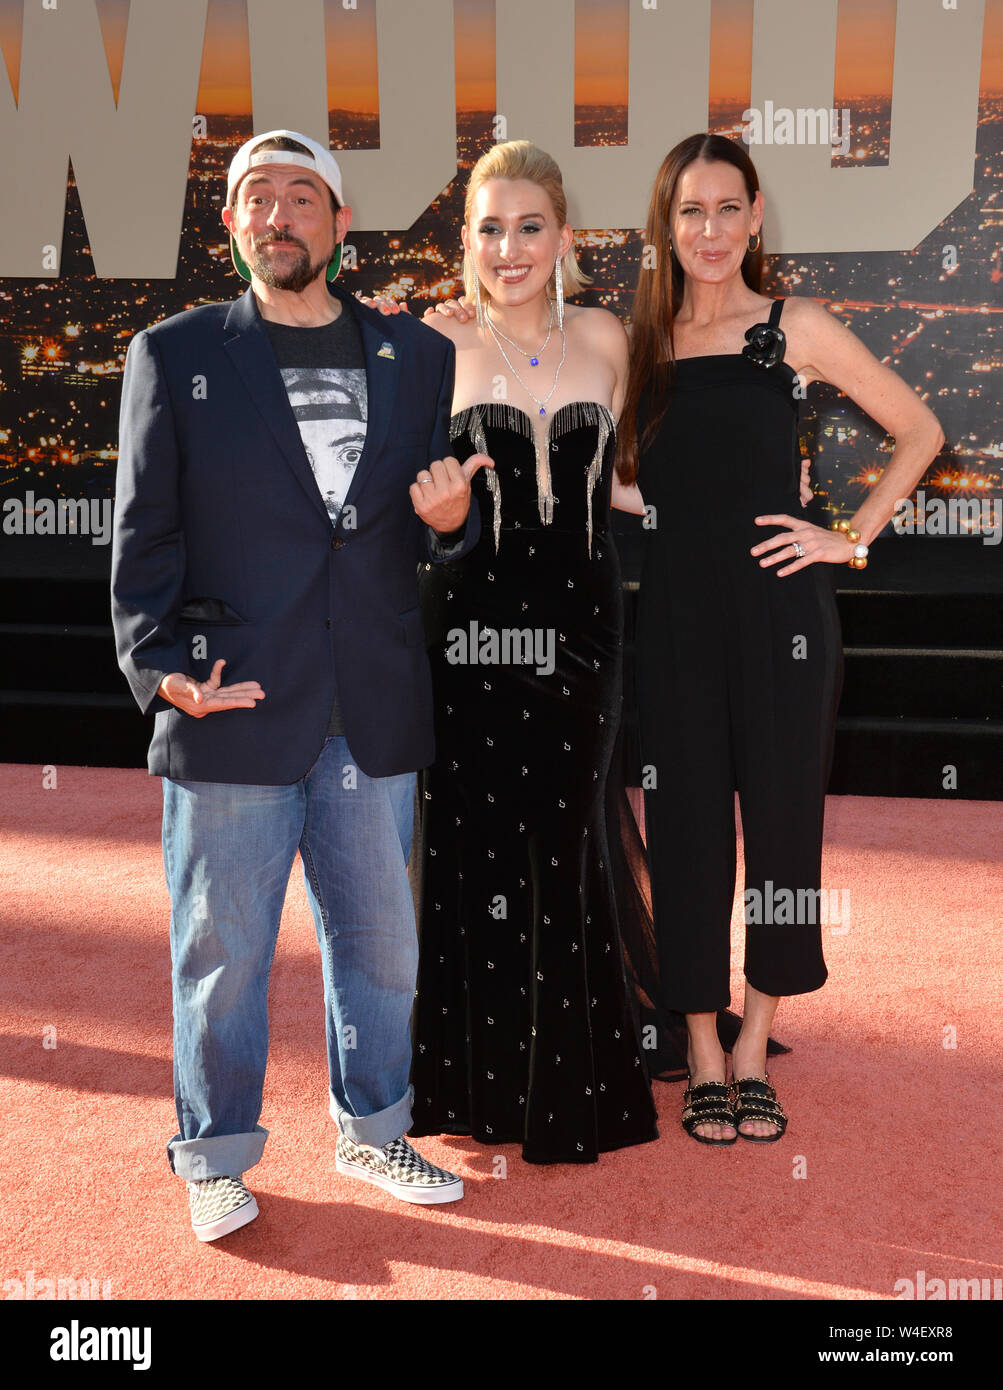 Once Upon A Time At Christmas 2019.Los Angeles Usa 22nd July 2019 Kevin Smith Harley Quinn